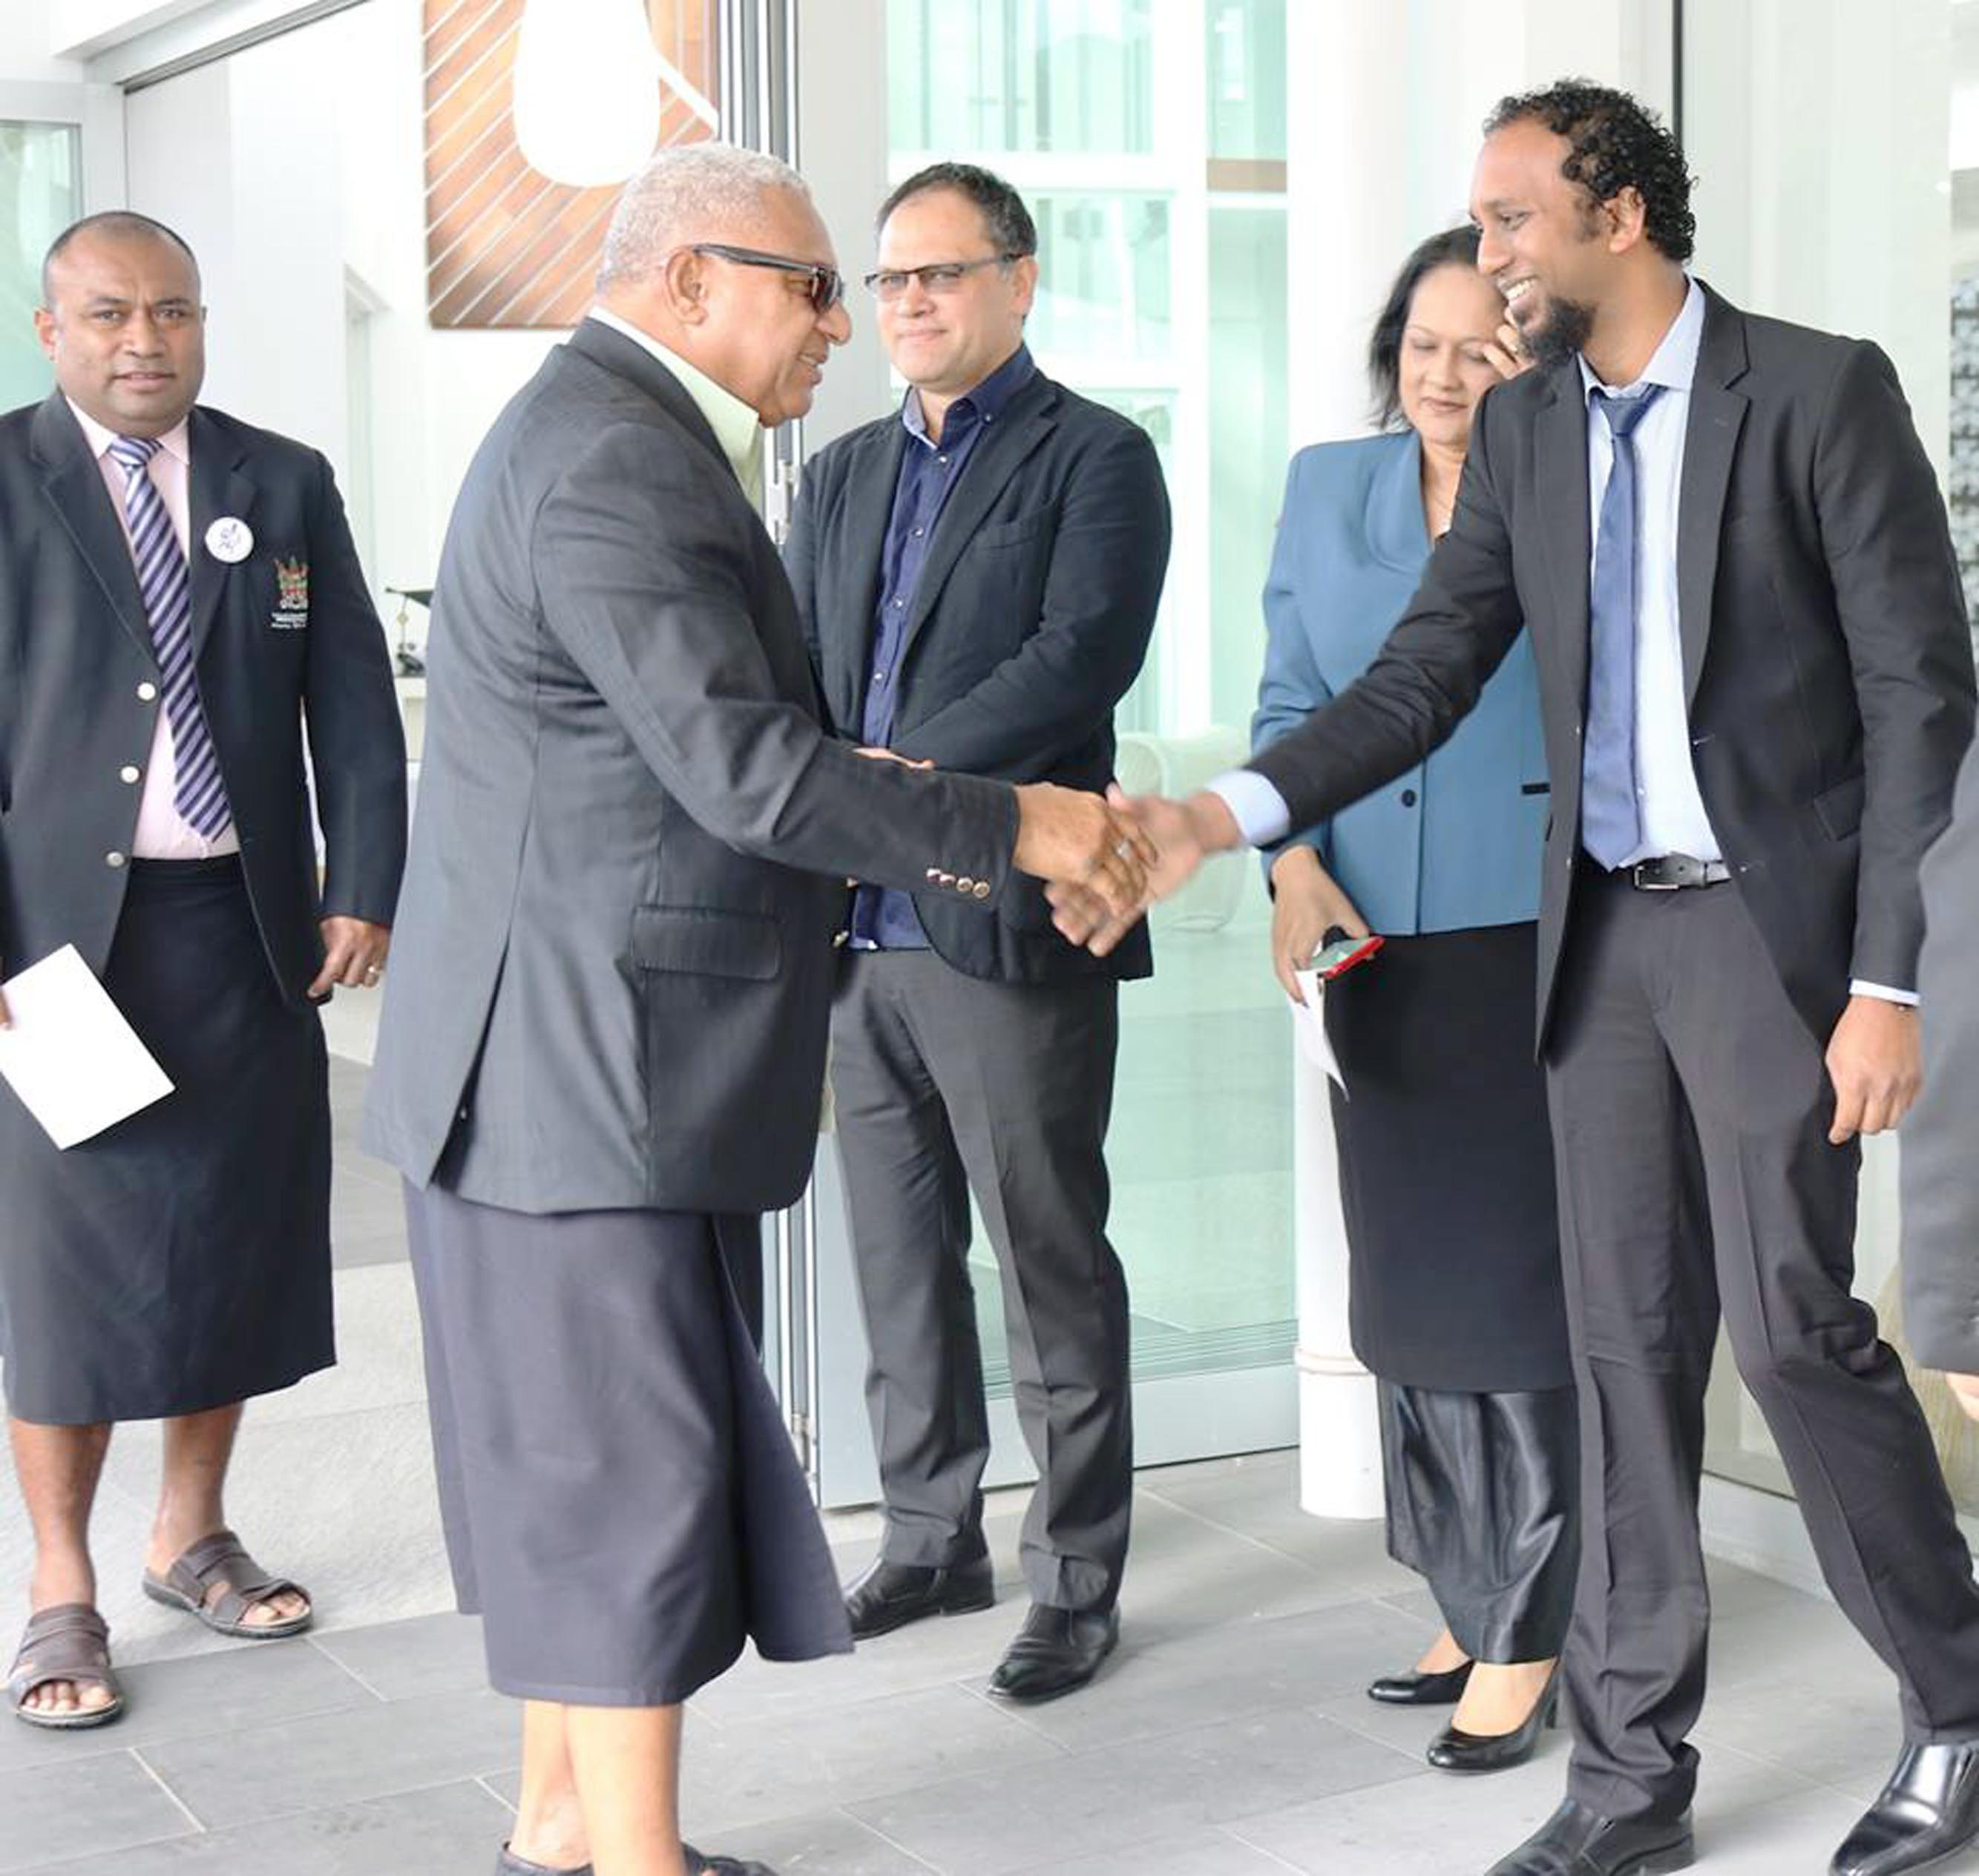 Prime Minister Voreqe Bainimarama meets medical professionals during the Fiji Medical Association 59th Annual Scientific Conference at the Pearl Resort in Pacific Harbour on September 8, 2017. Photo: DEPTFO News